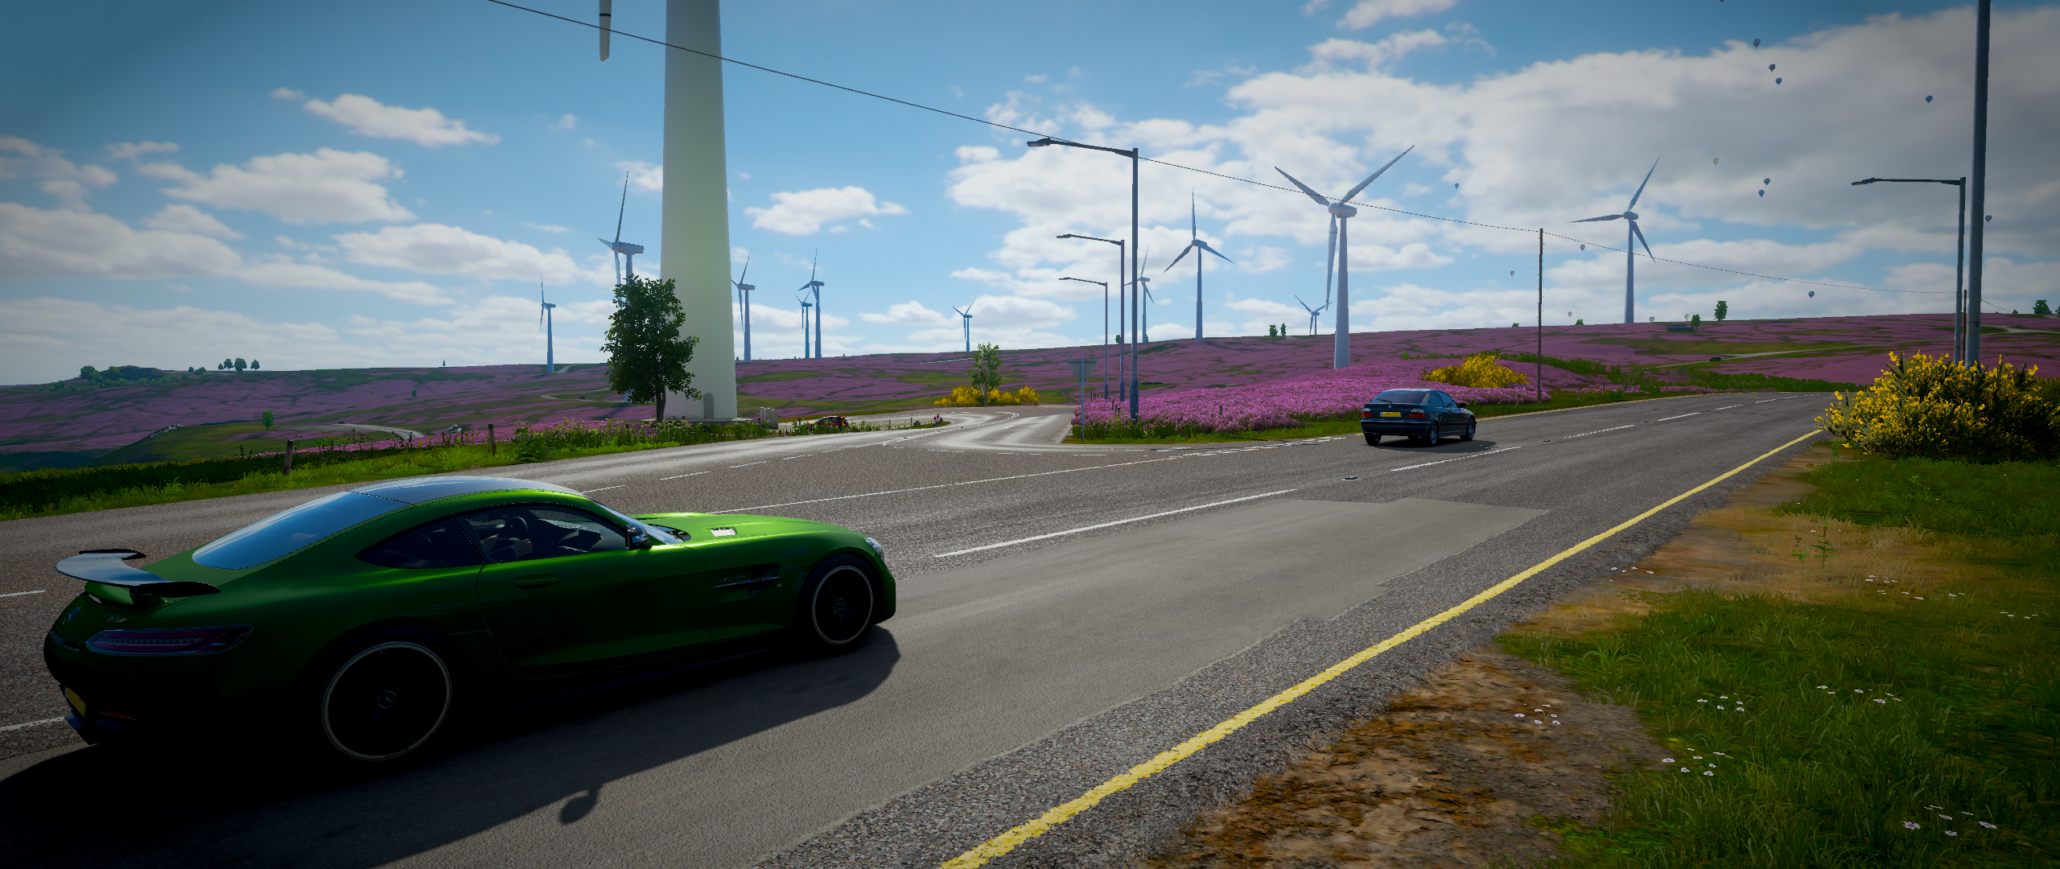 Forza Horizon 4 Next Update To Introduce Route Creator, New